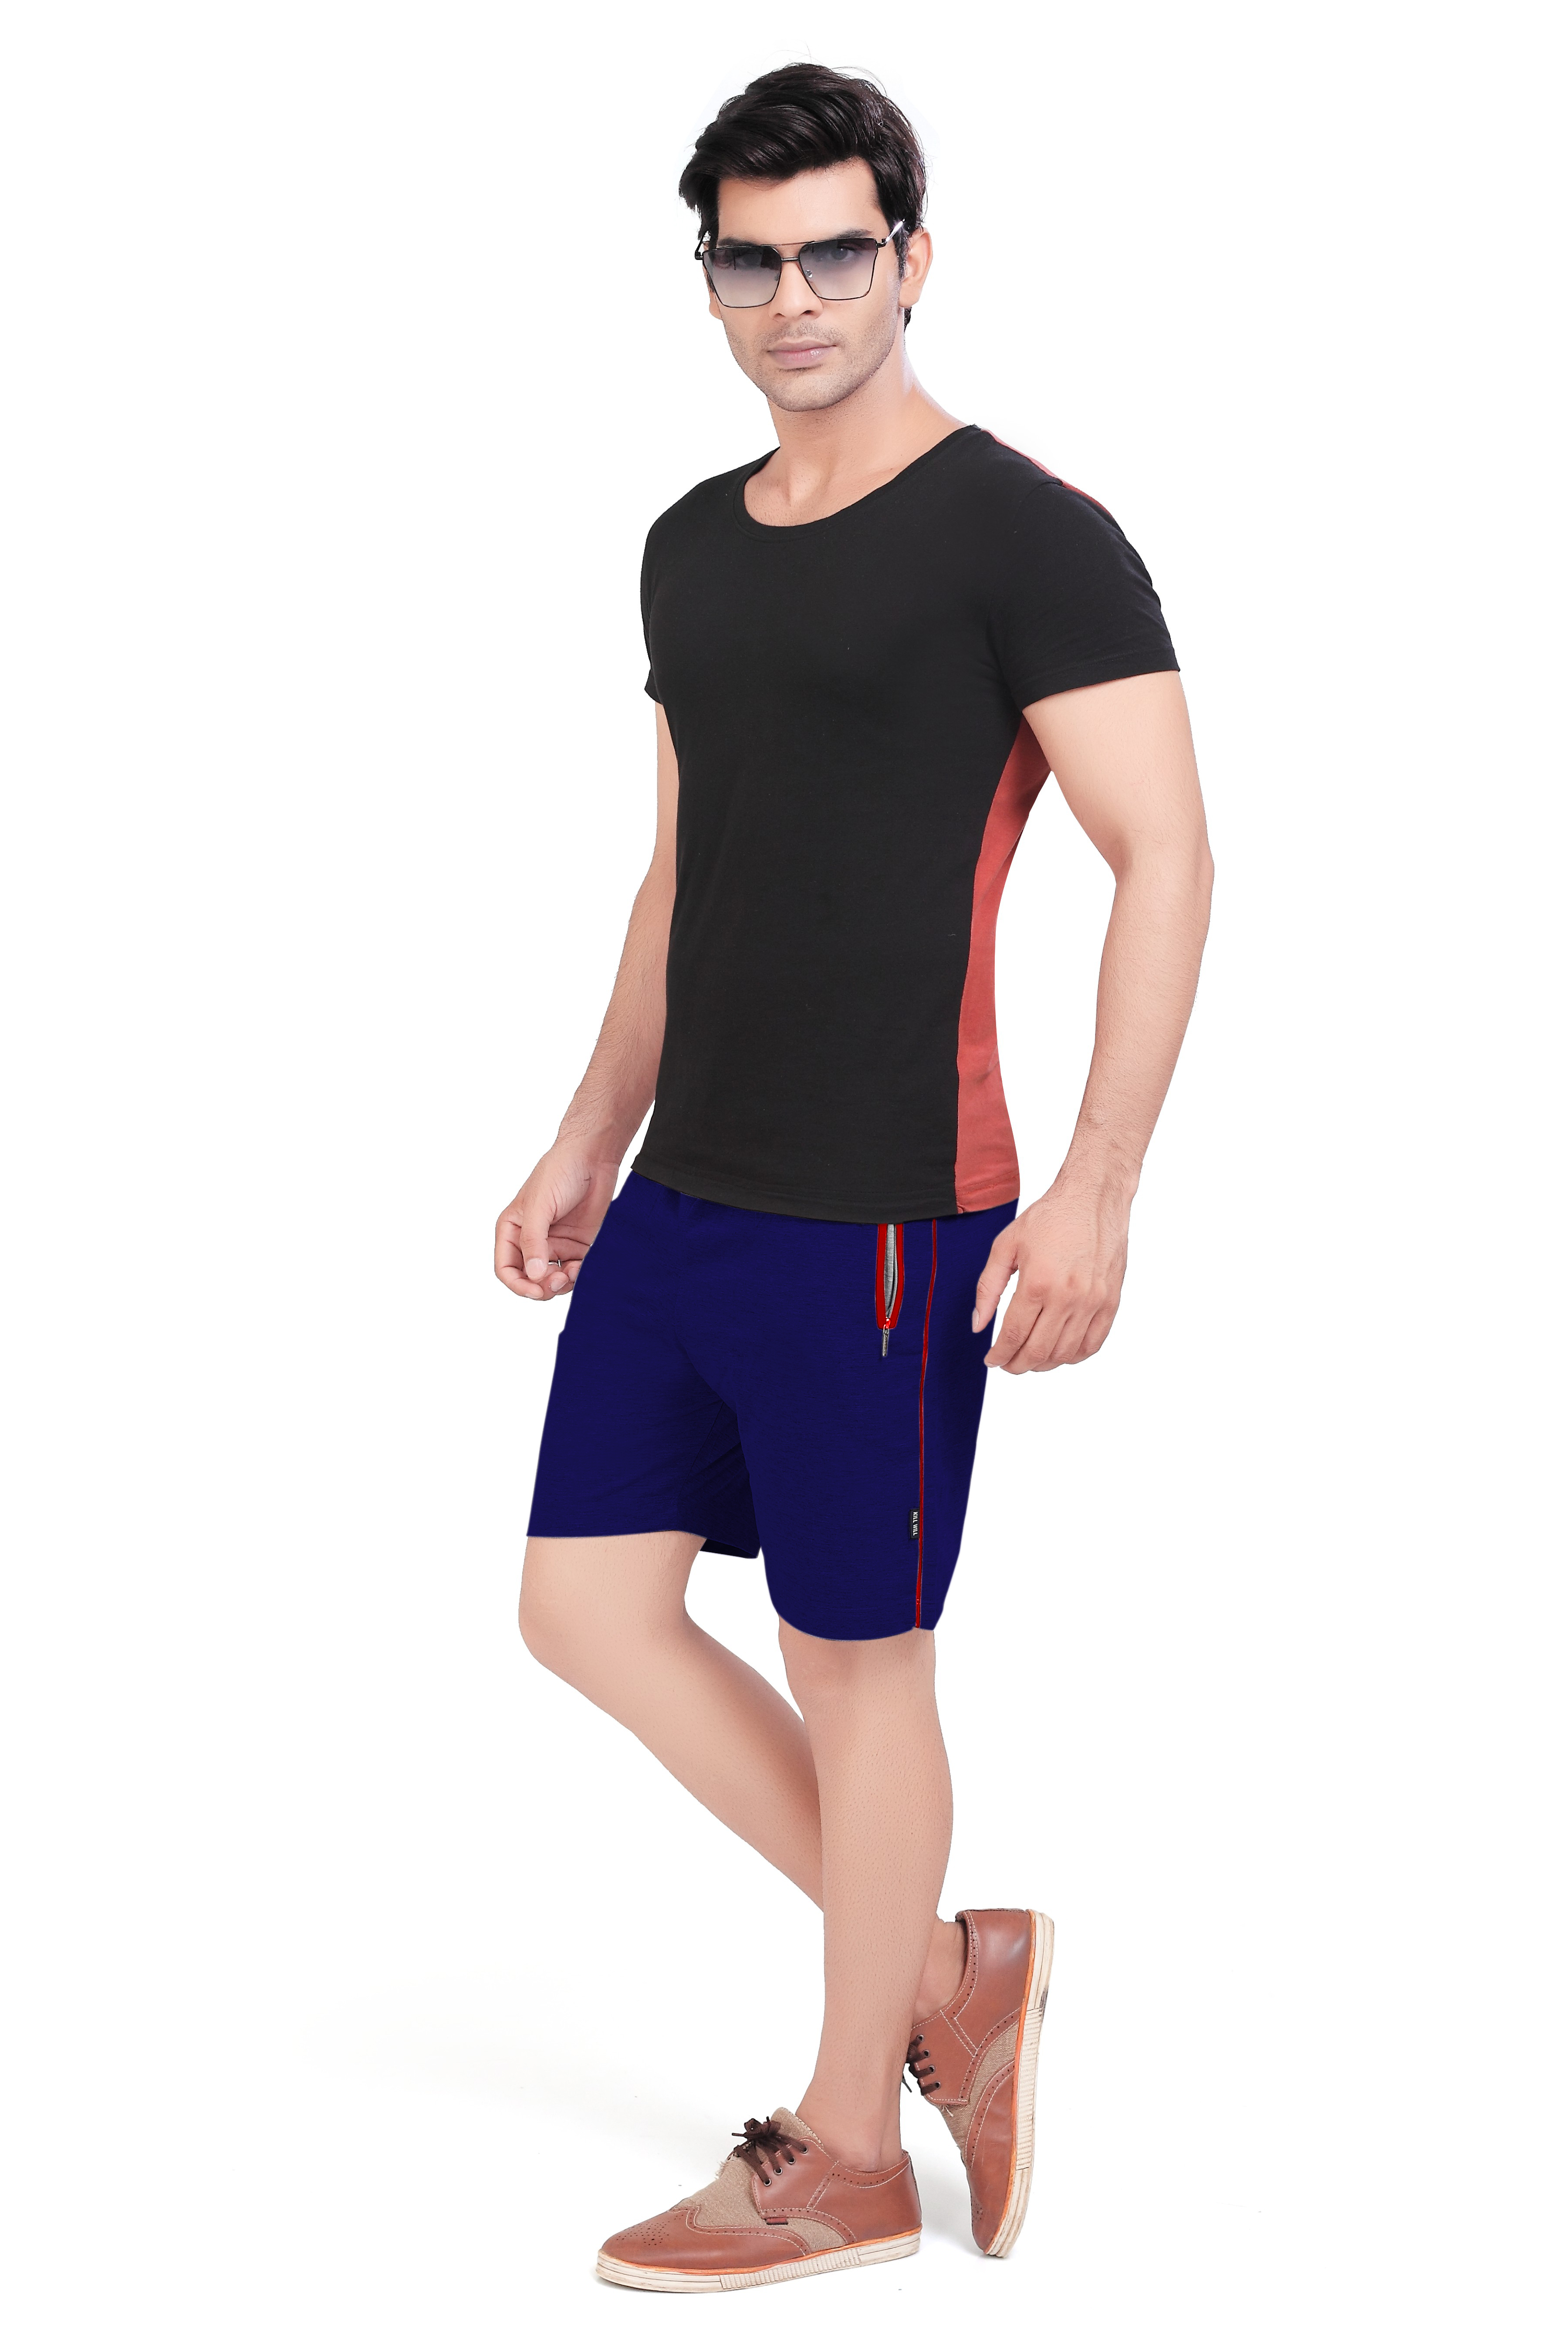 Cotton Mid Rise Shorts With Insert Pocket For Men (4XL, Royal Blue)